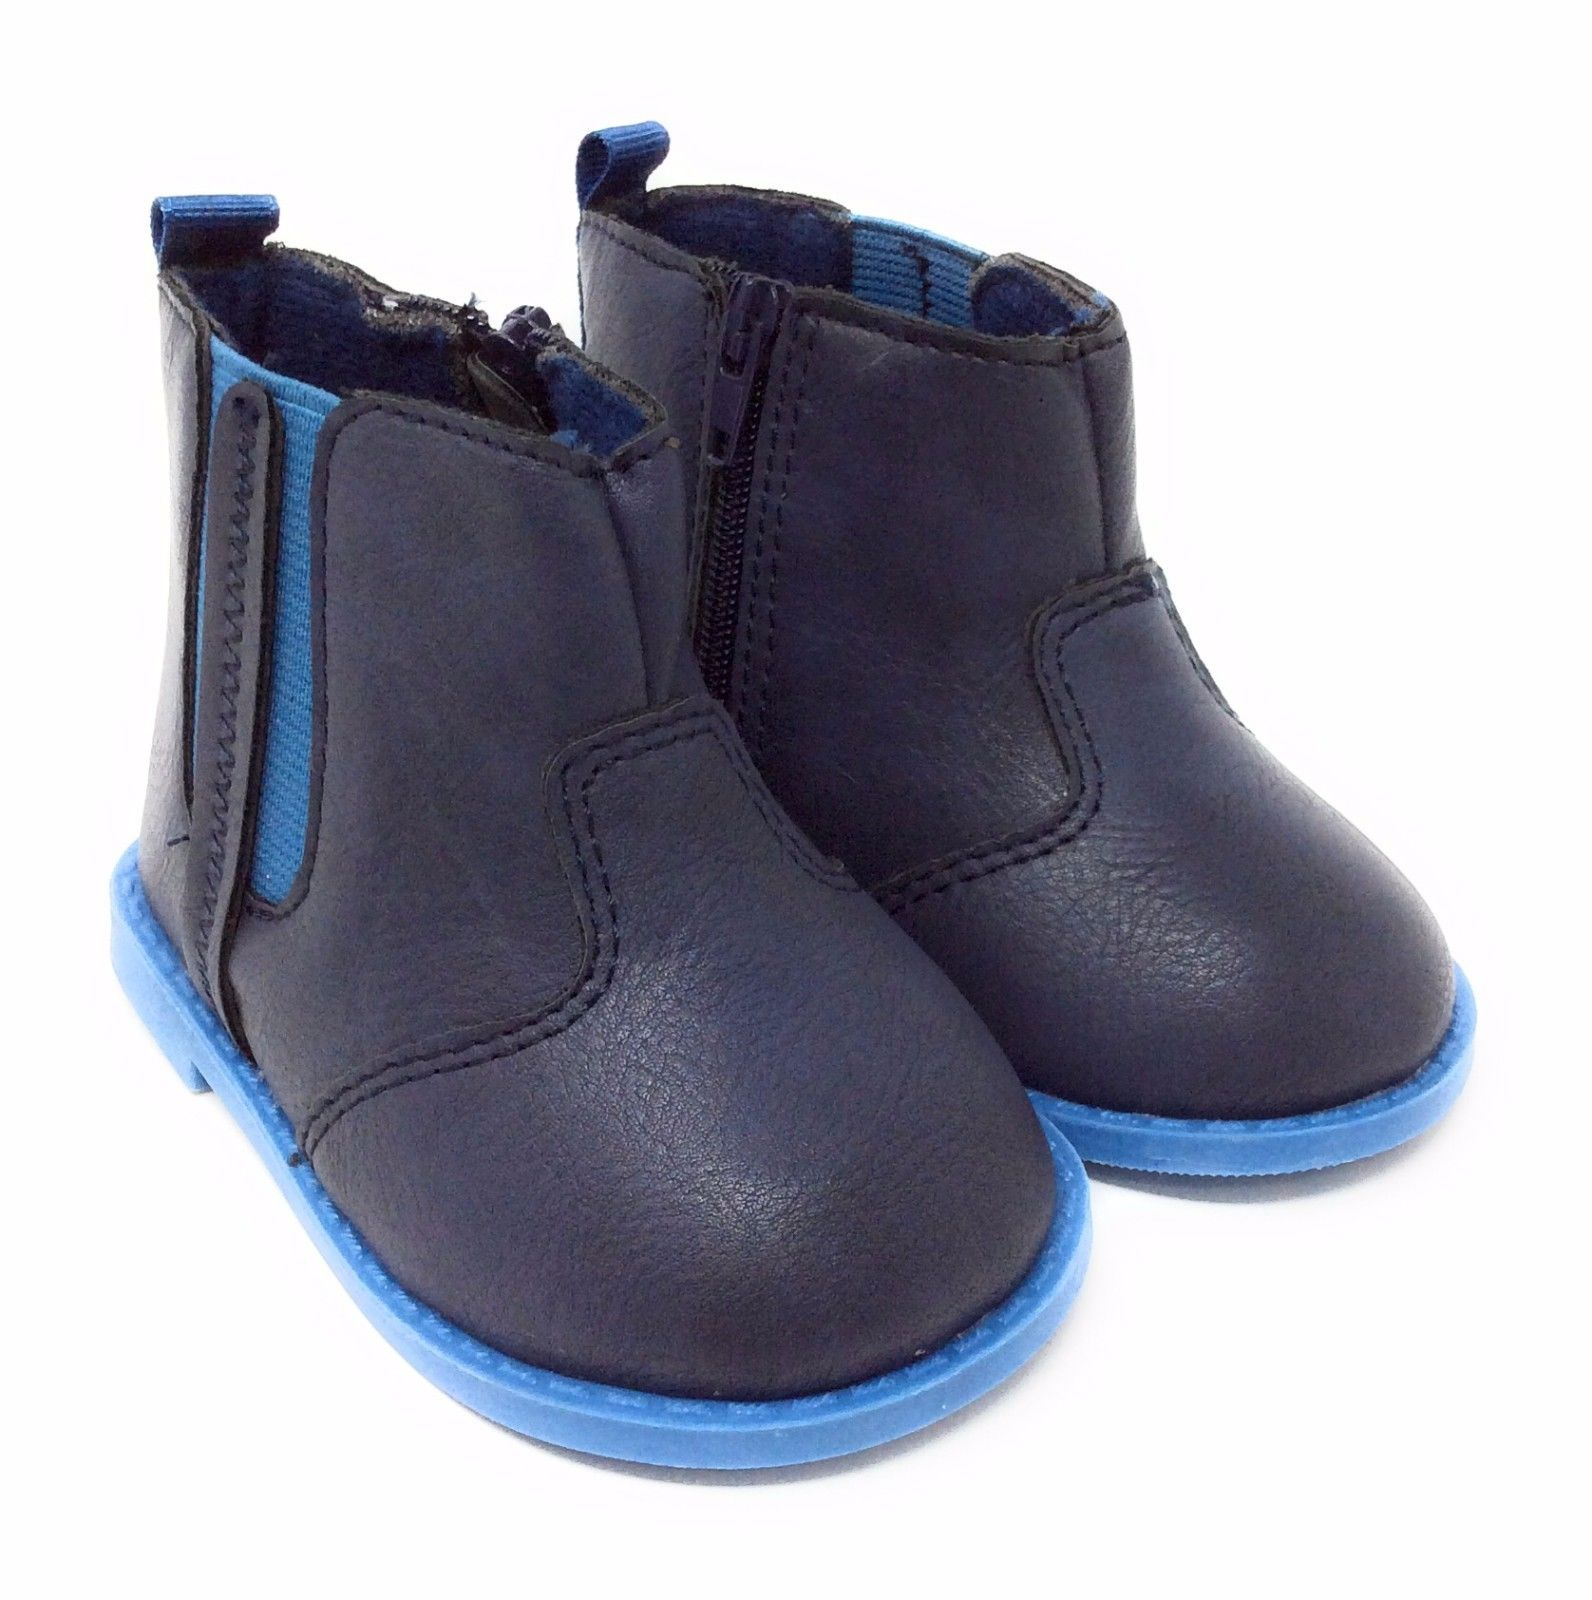 Rugged Bear RB72162 Boys Snow Boots Navy combo  Toddler